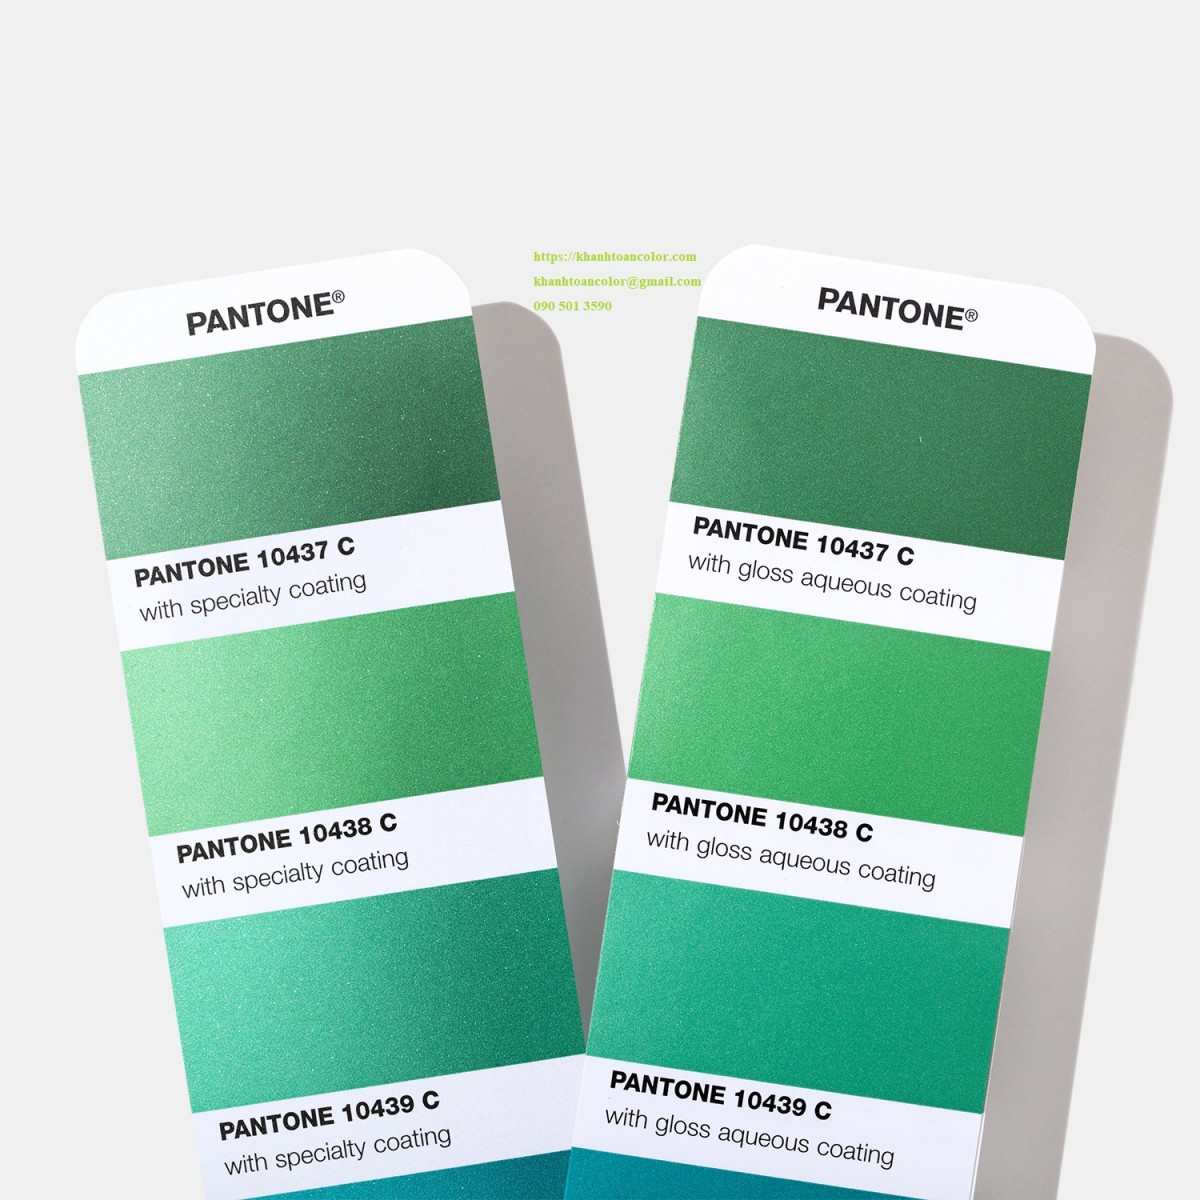 bang mau pantone-graphics-pms-metallics-fan-guide-product-4